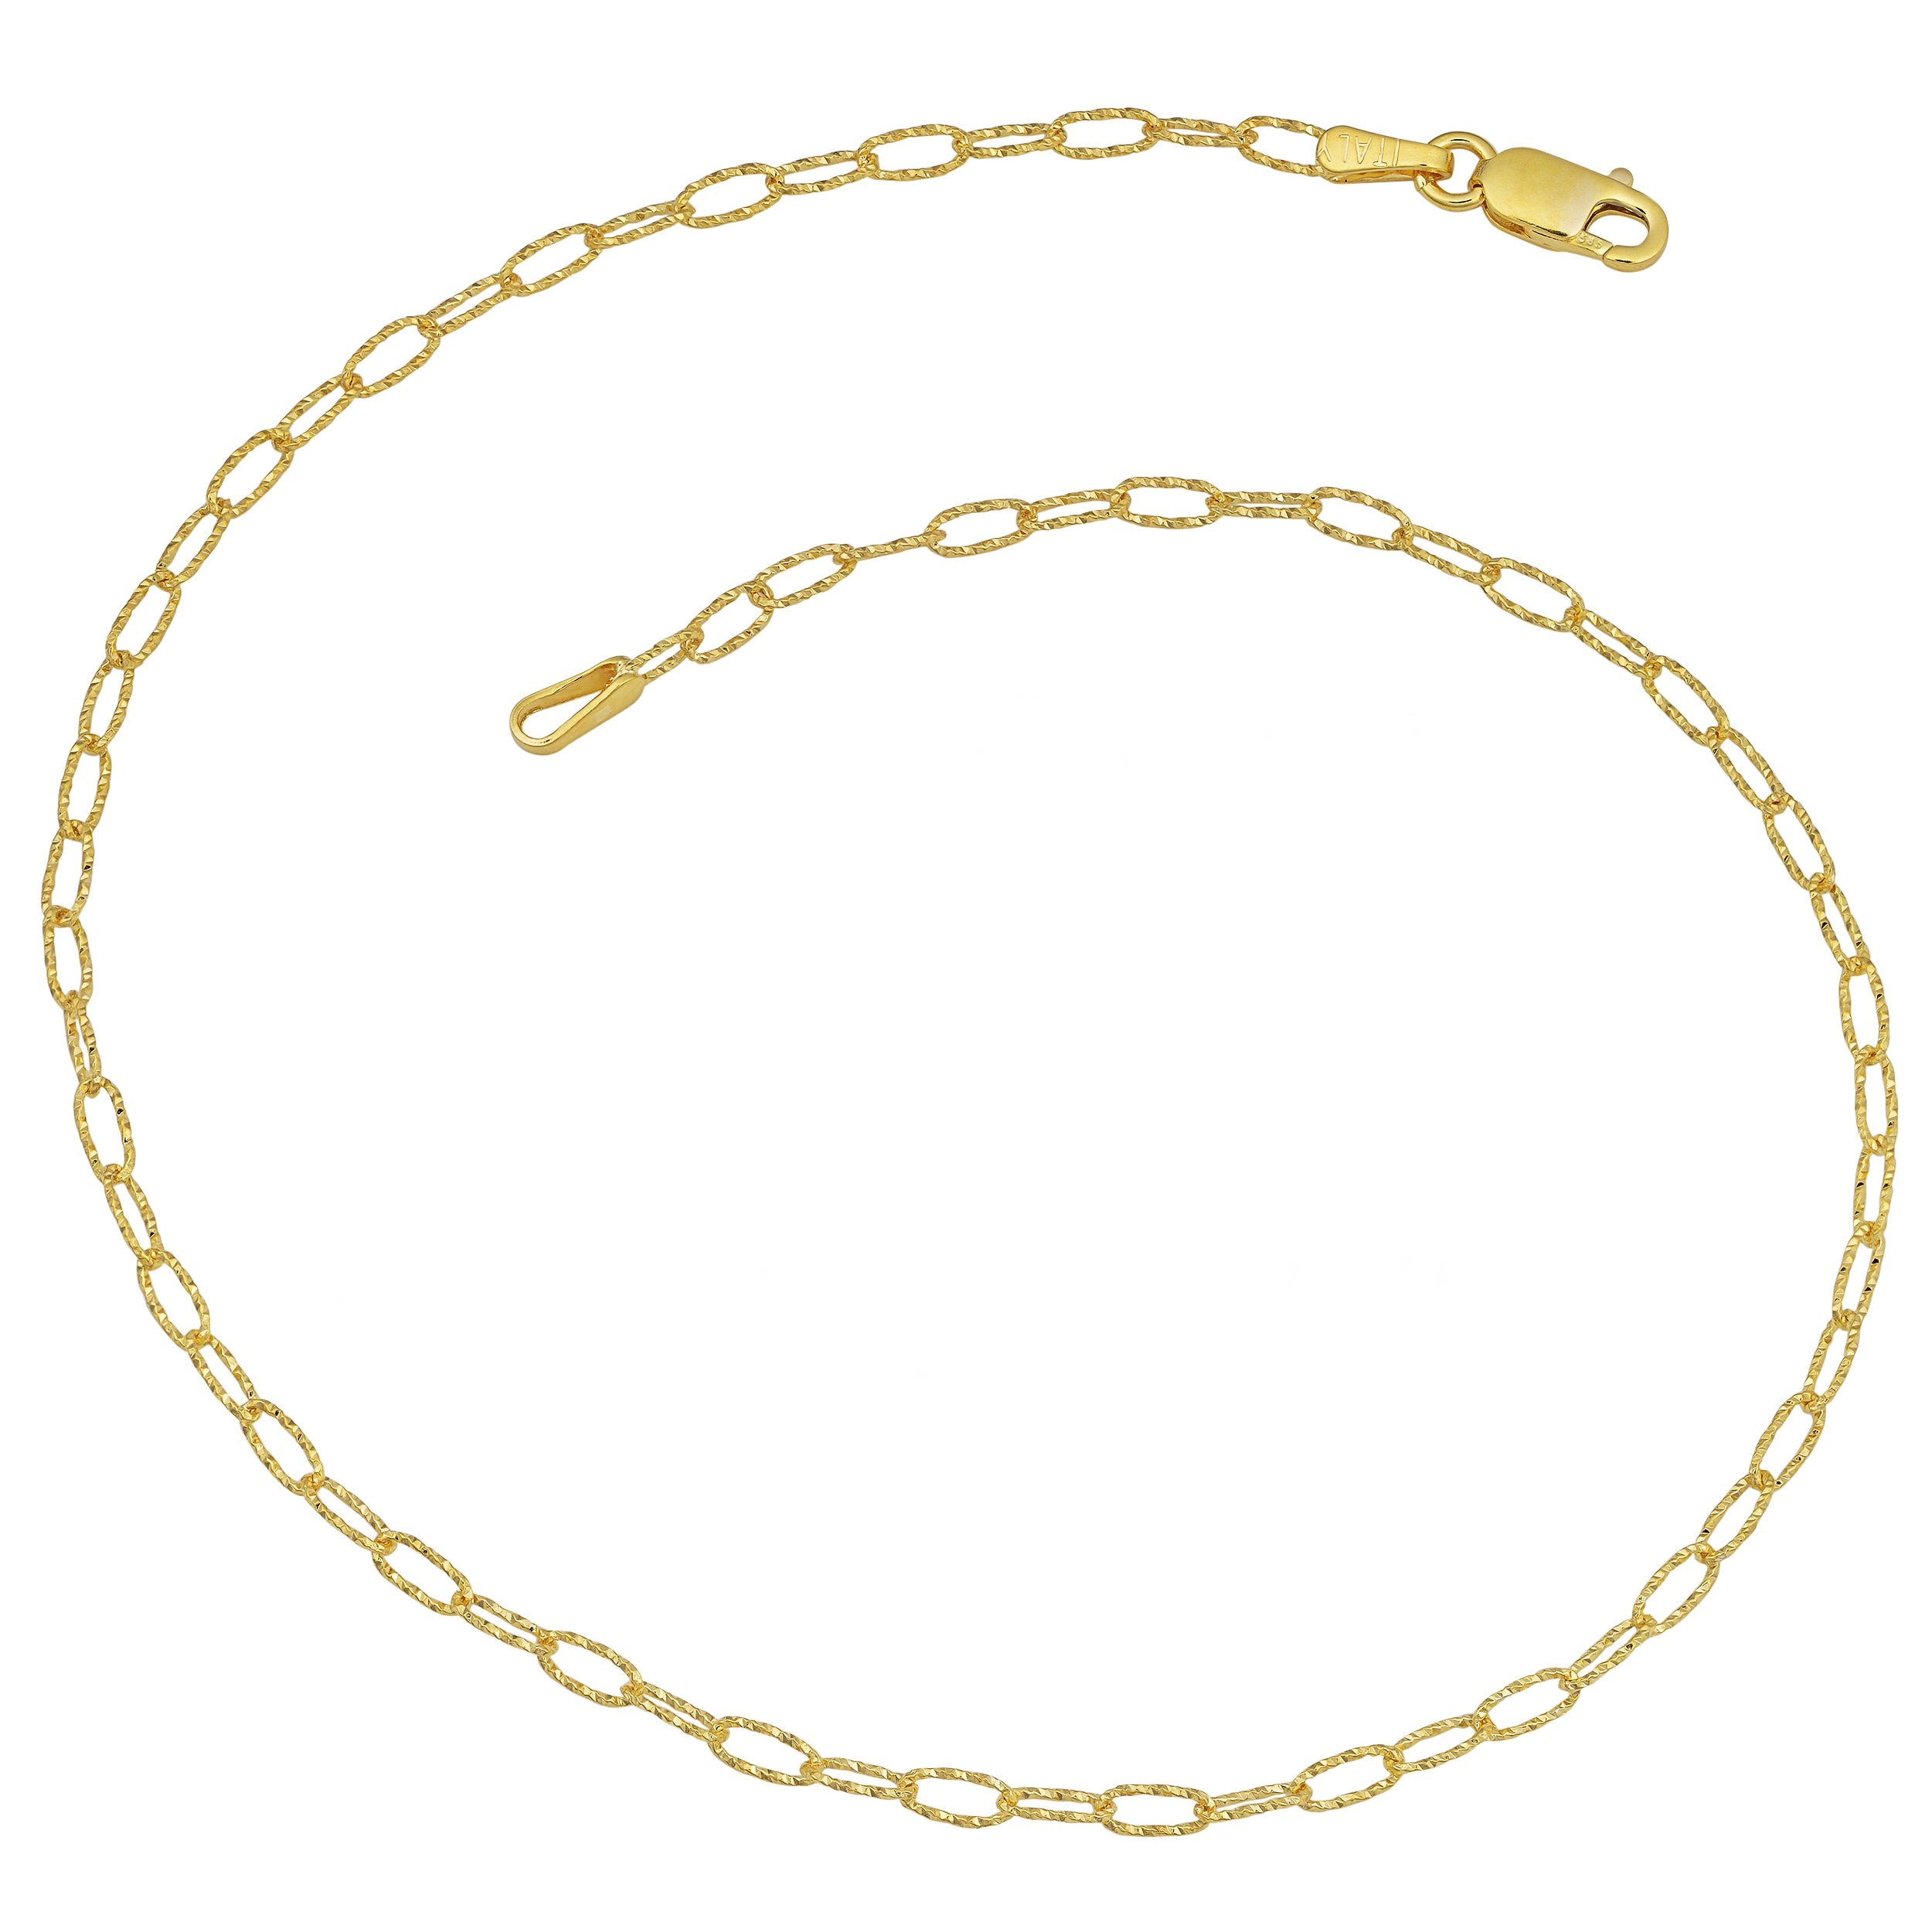 kismet gallery jewelry lyst rose diamond milka anklet by chain beads gold